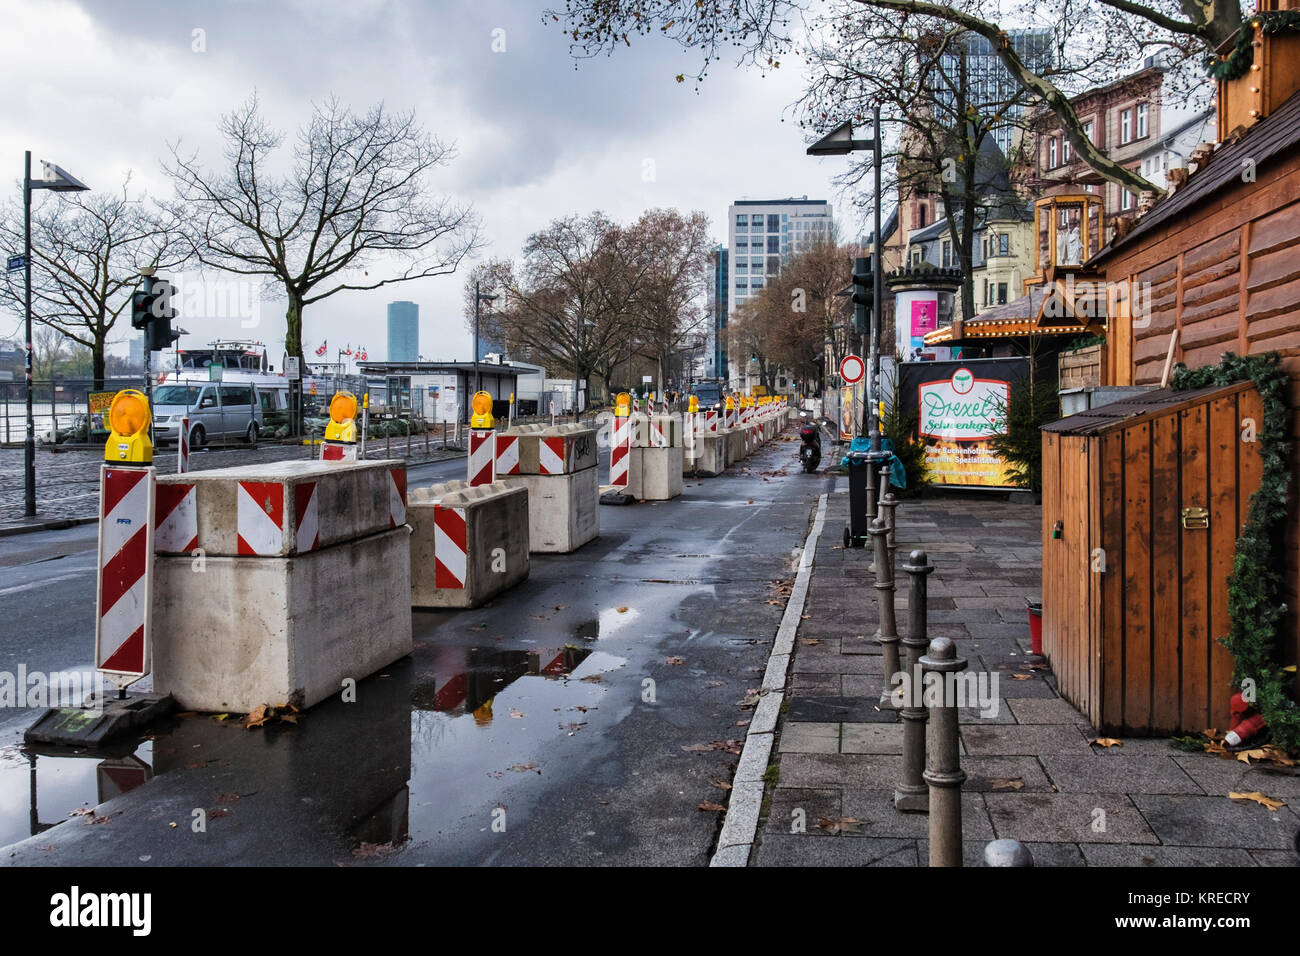 Frankfurt, Germany,Concrete blocks form security barriers to protect Xmas market from Terrorist vehicle attack - Stock Image